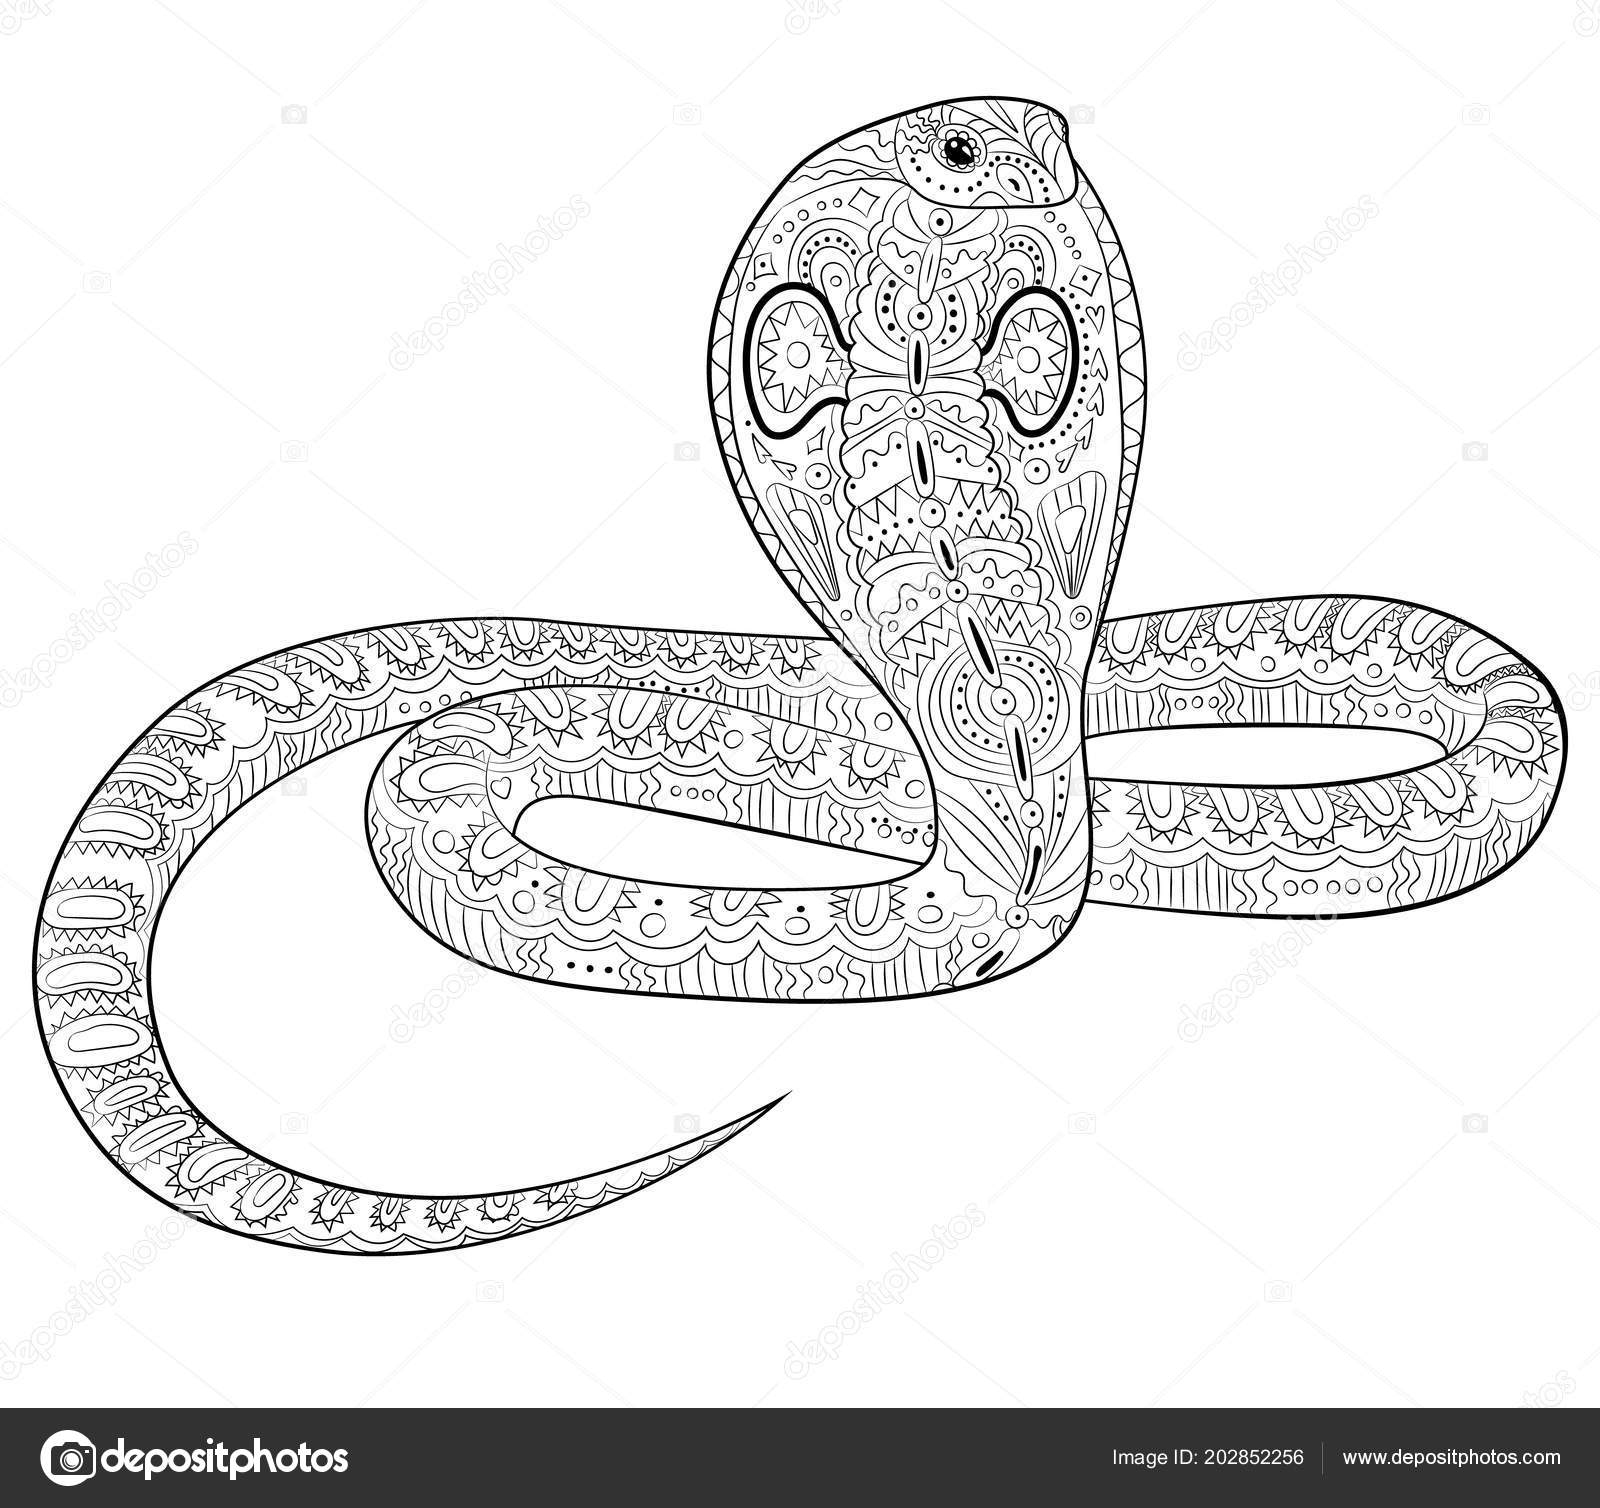 Coloring page with snake in zentangle style. — Stock Vector ...